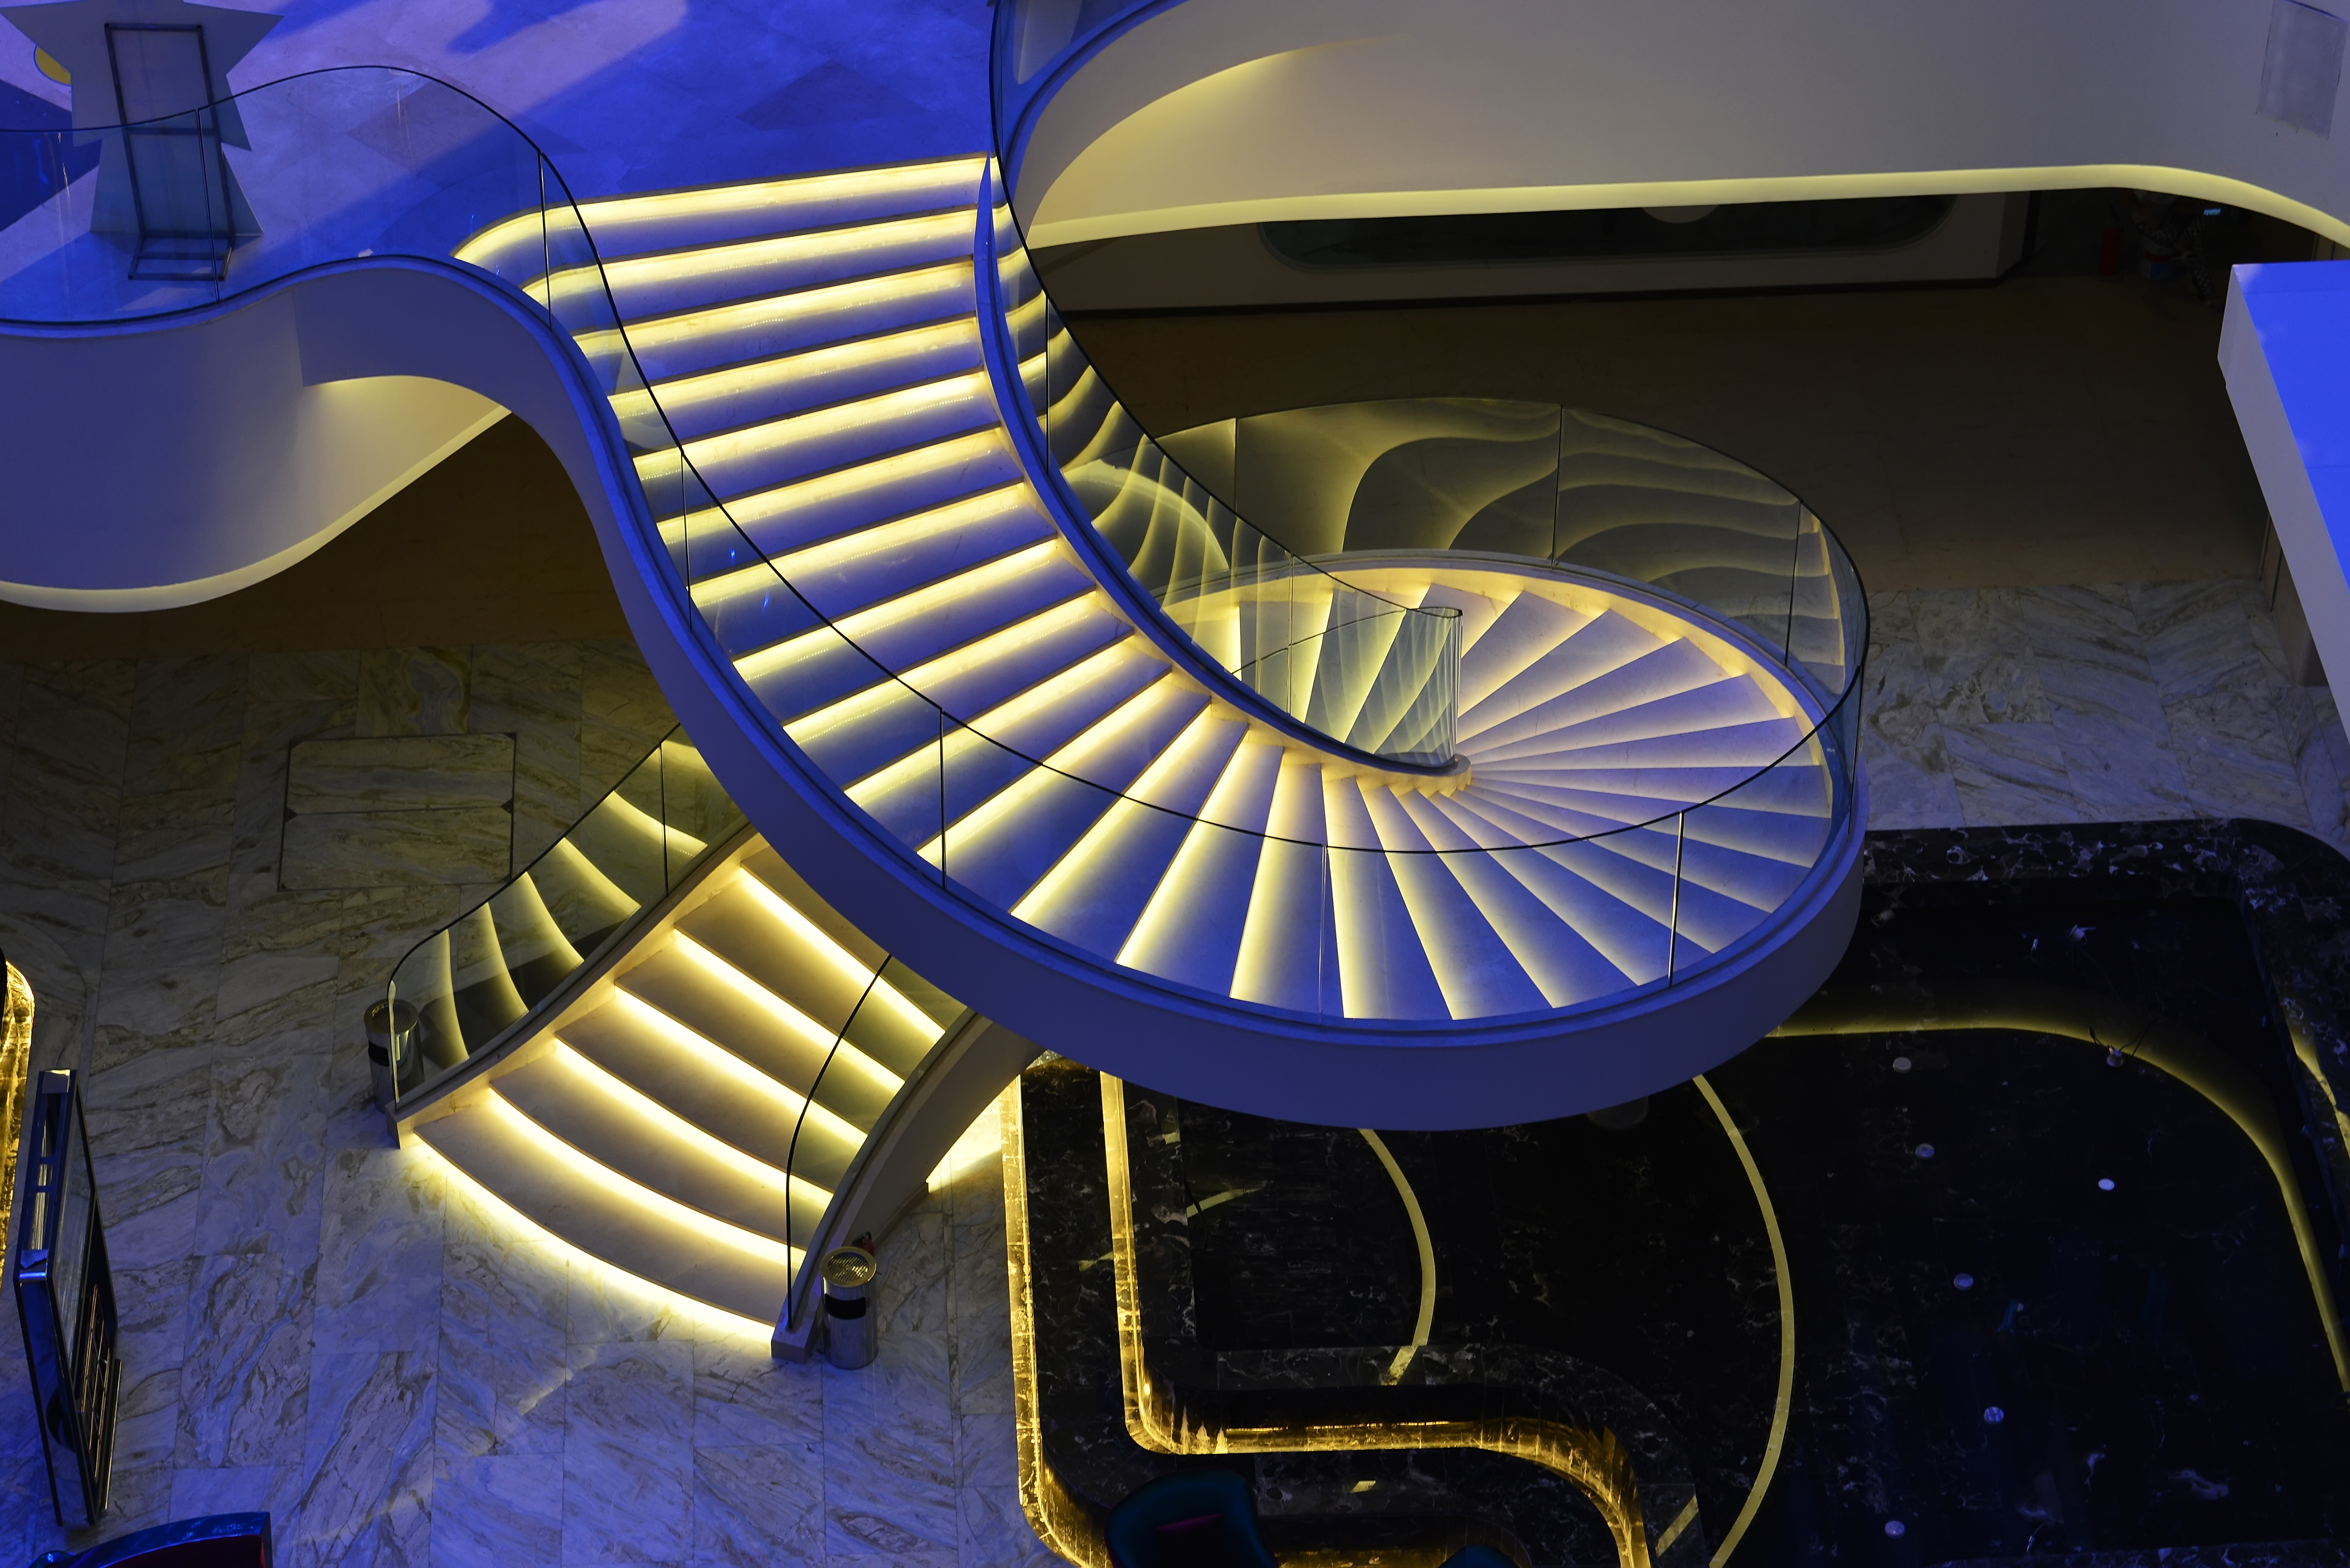 Spiral staircase 55368